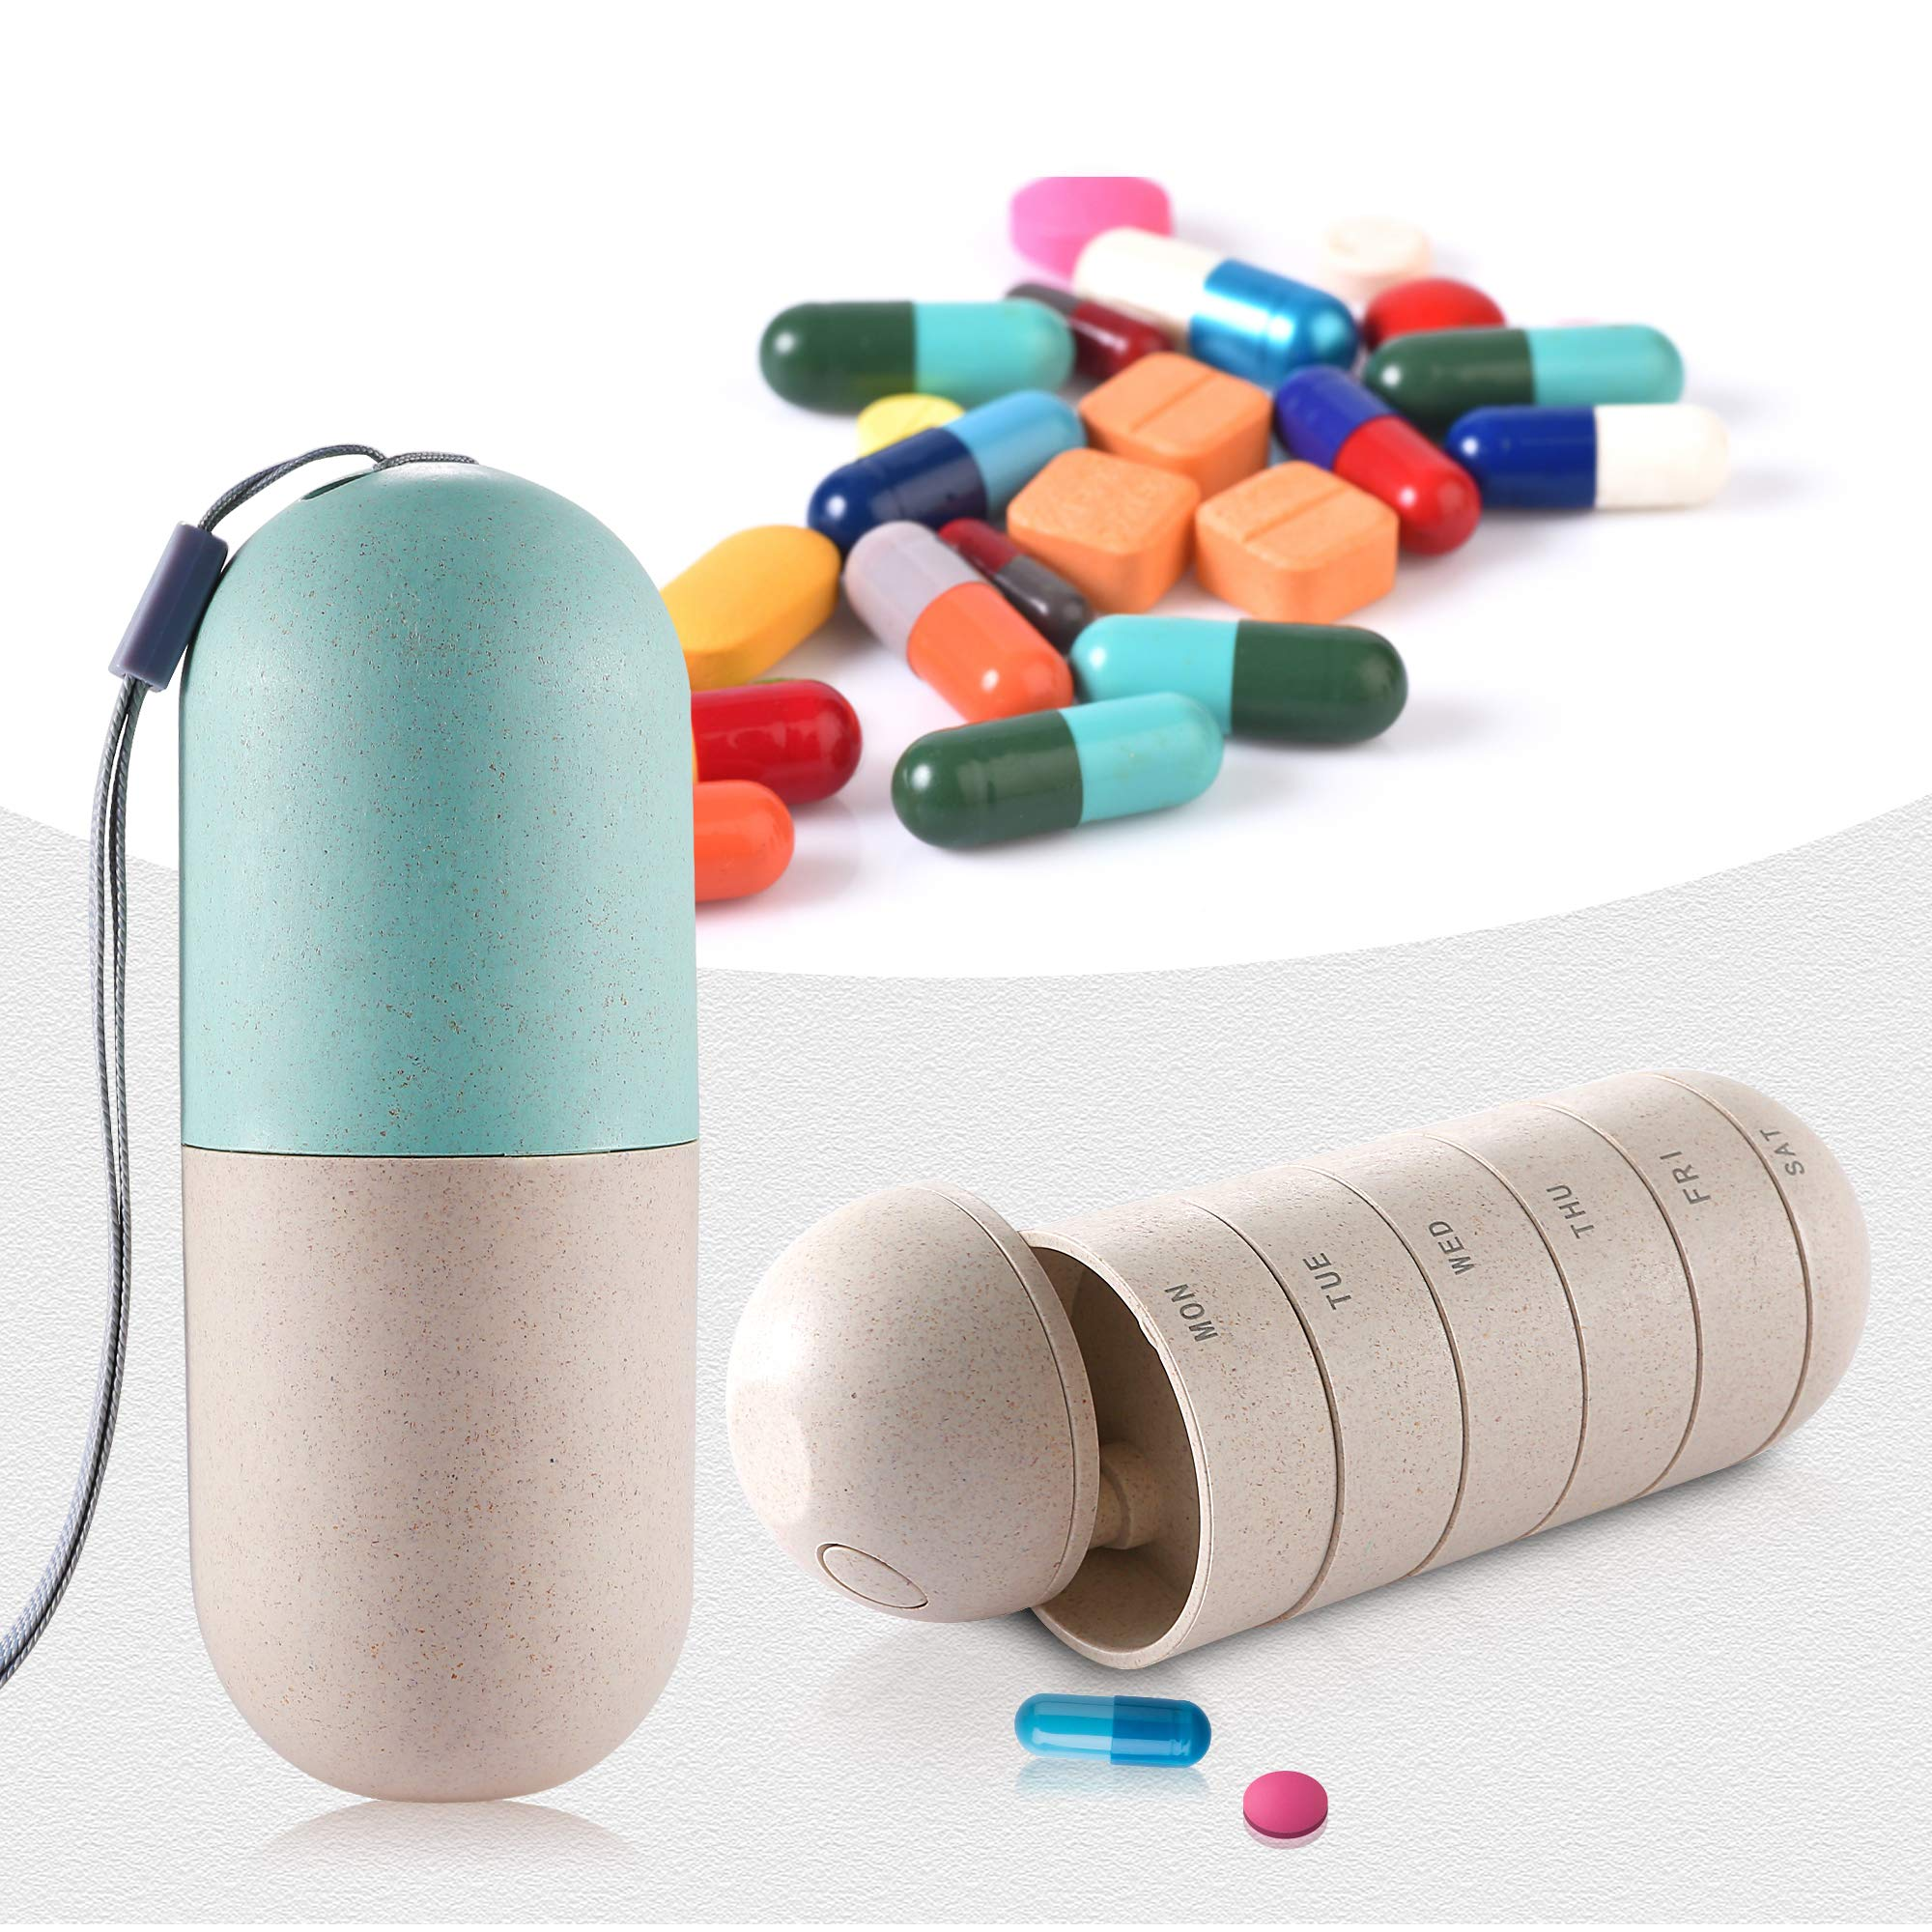 Zannaki Grain Fiber Portable Weekly Pill Organizer, BPA Free Travel Camping 7 Day Pill Box Case with Unique Water and Moisture Proof Design to Hold Vitamins, Cod Liver Oil, Supplements and Medication by Zannaki (Image #4)